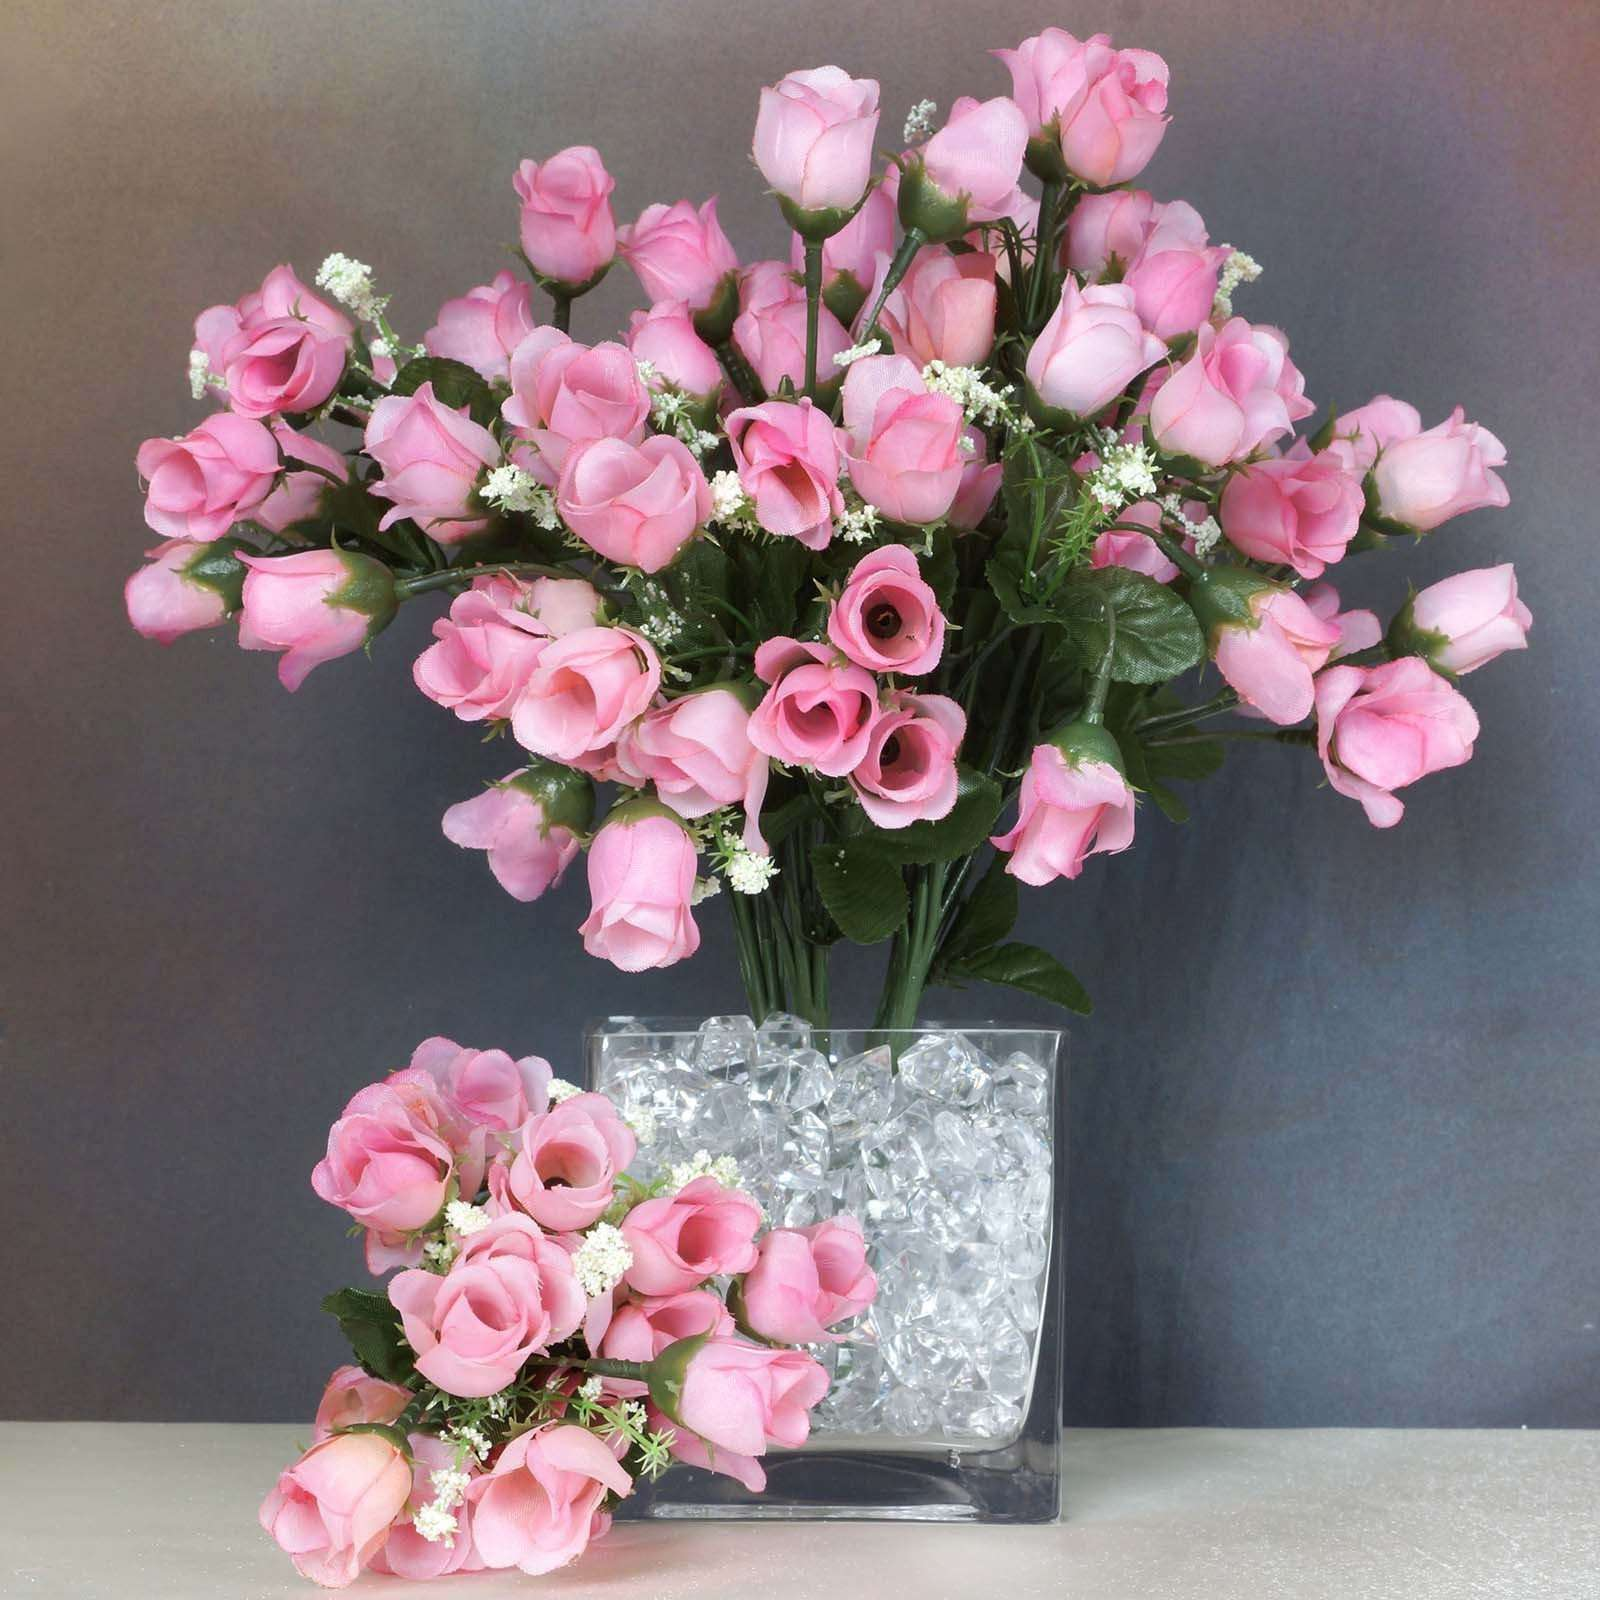 12 Bush 180 Pcs Pink Artificial Silk Rose Bud Flowers With Baby